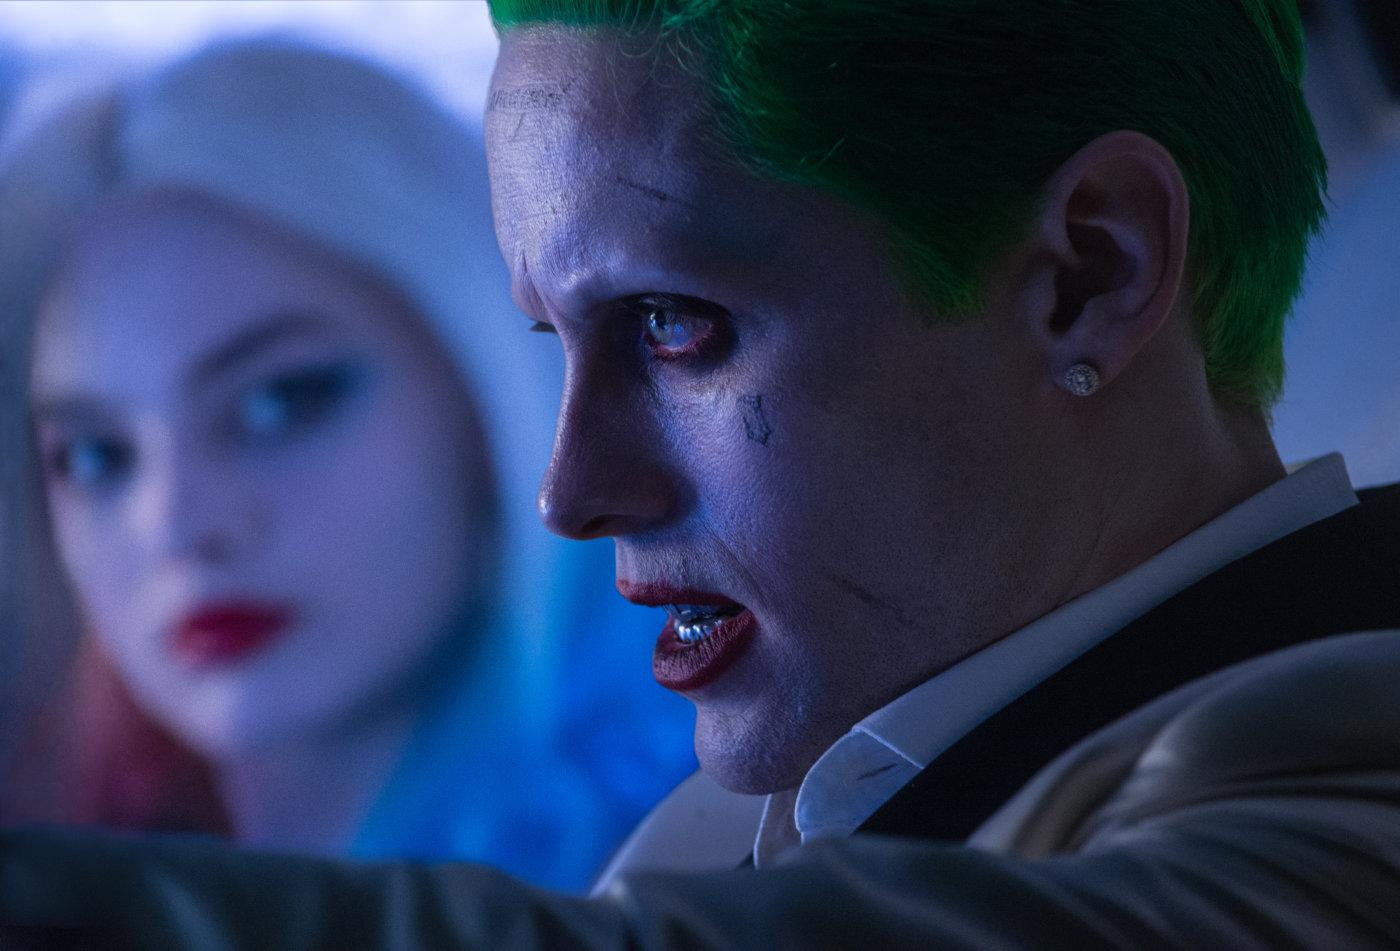 Margot Robbie's Harley Quinn with Jared Leto's Joker in 2016's Suicide Squad. (Warner Bros.)